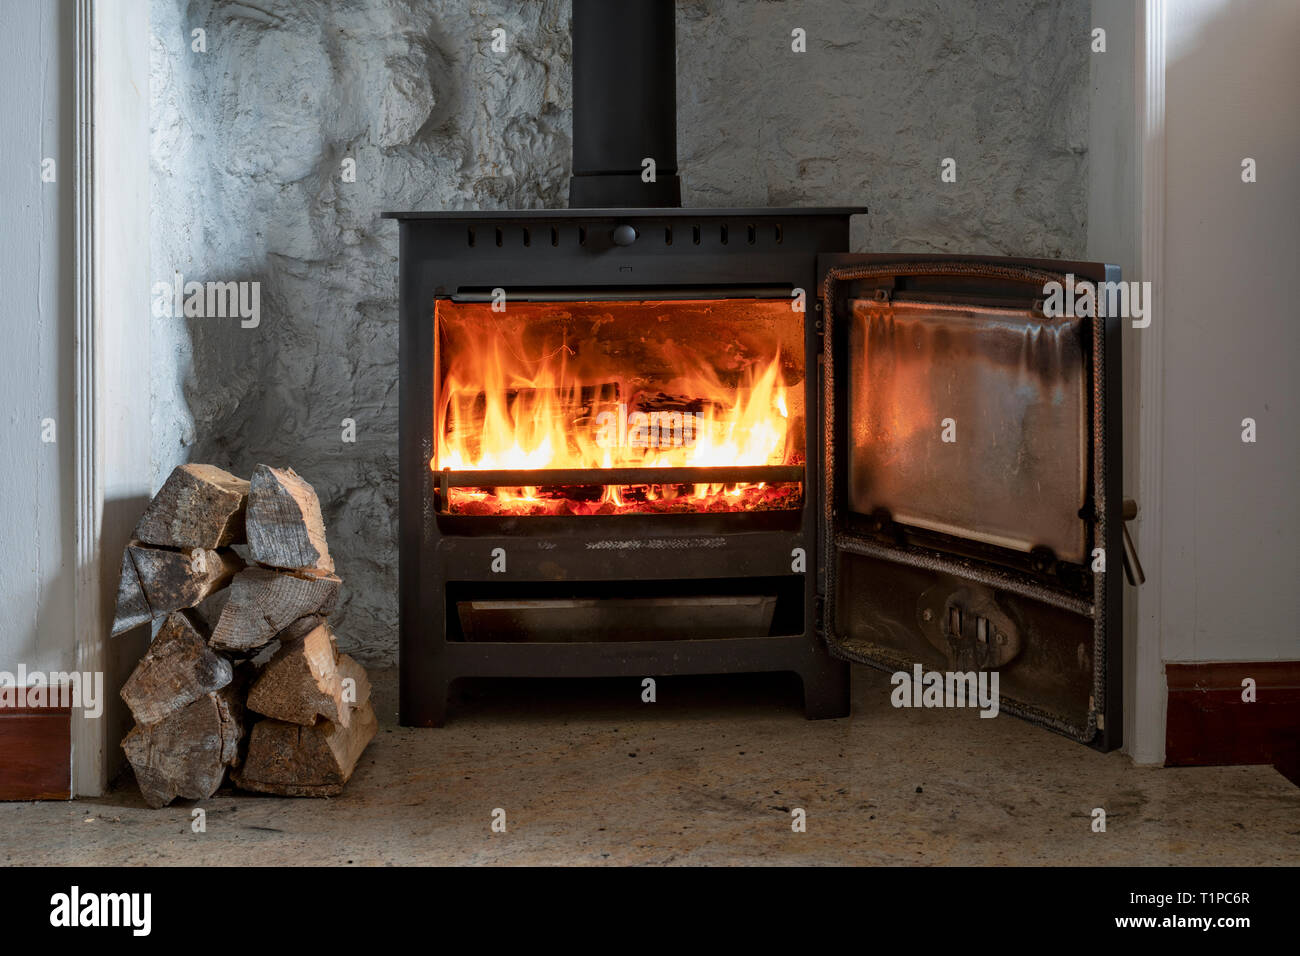 Wood burning in a woodburning stove with a pile of logs. Scotland - Stock Image